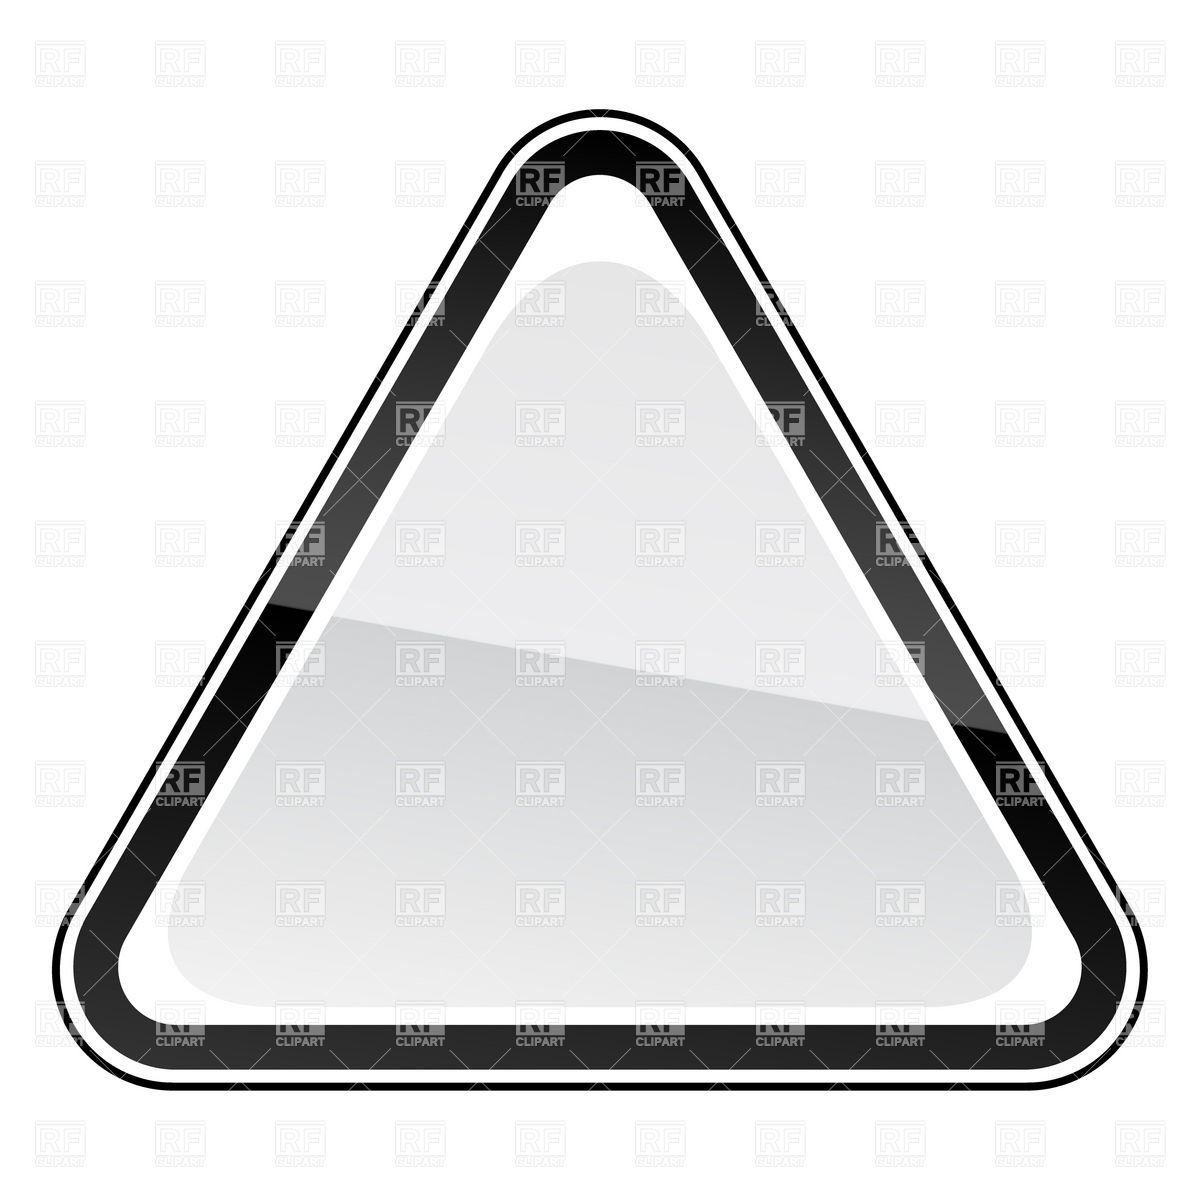 1200x1200 White blank three cornered road sign with black border Royalty